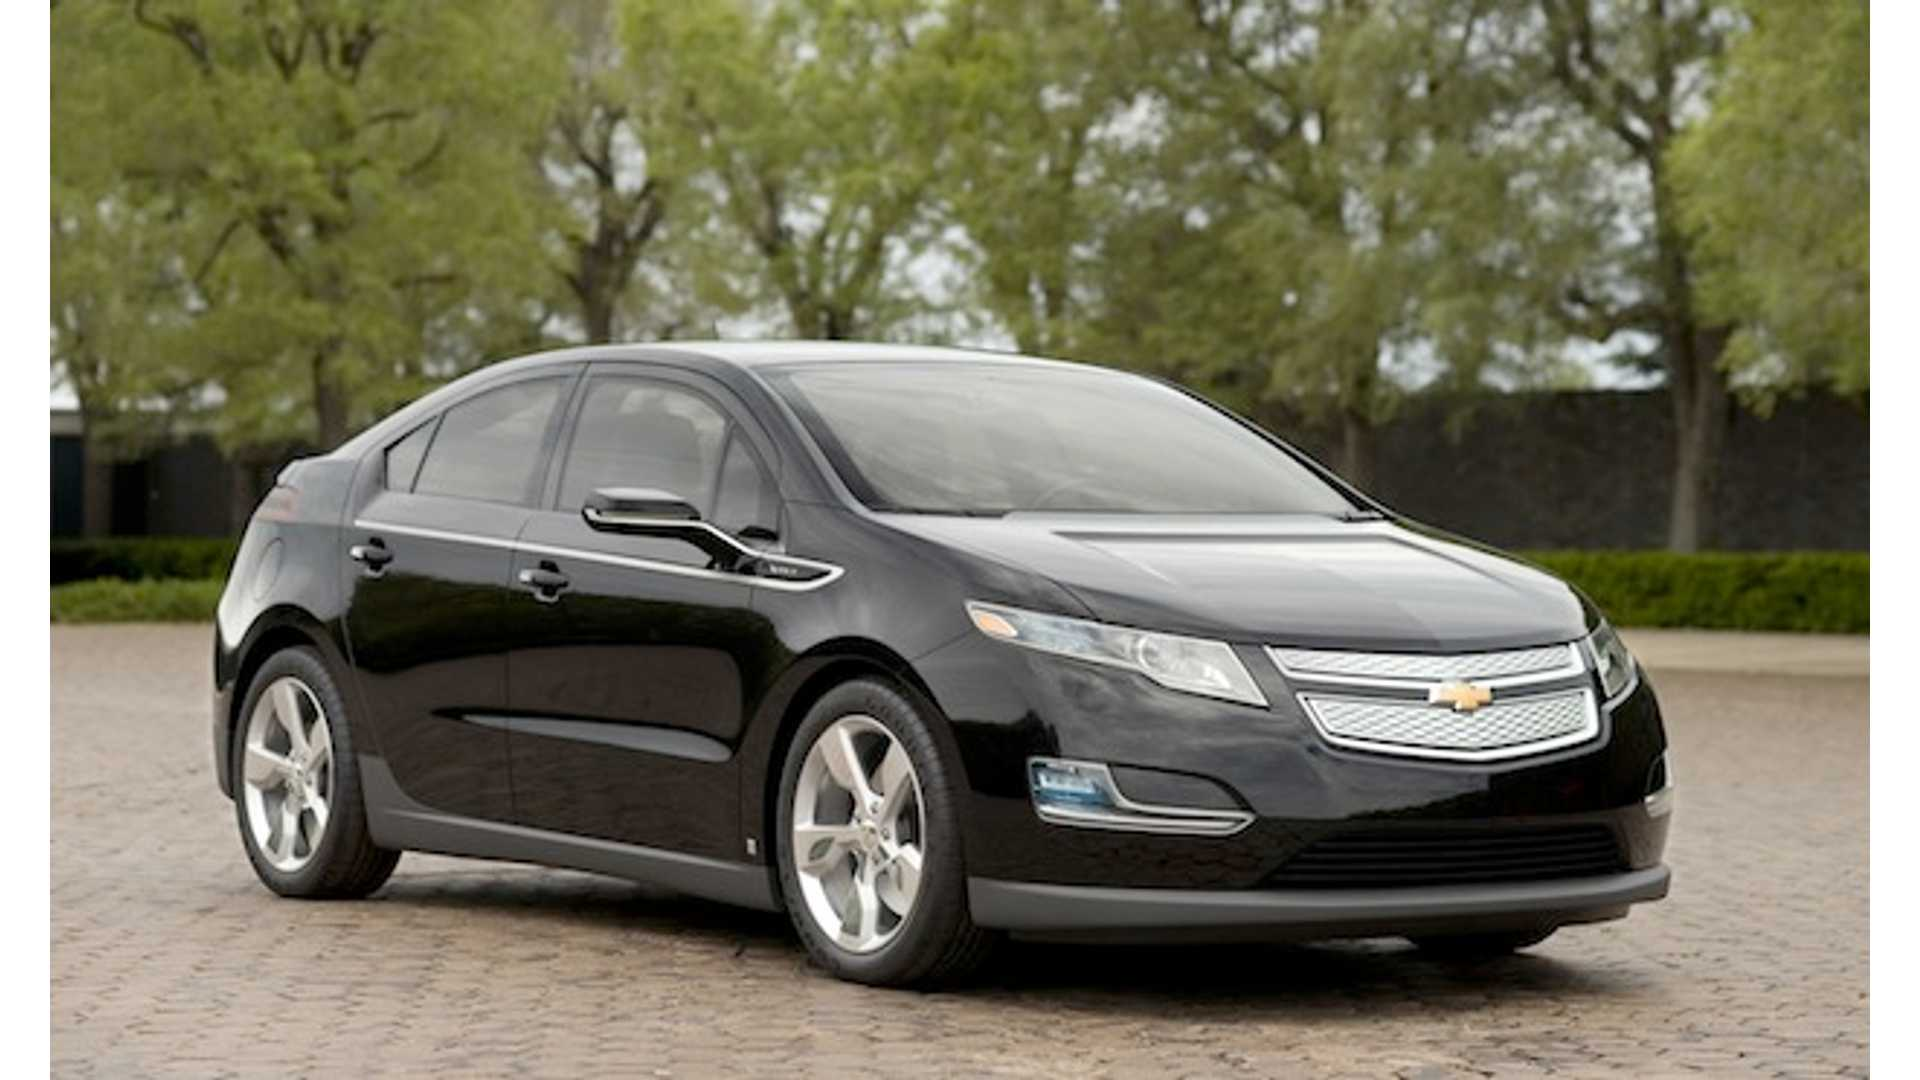 2017 Chevrolet Volt Specs Revealed More Range Hold Mode And Slower Charging